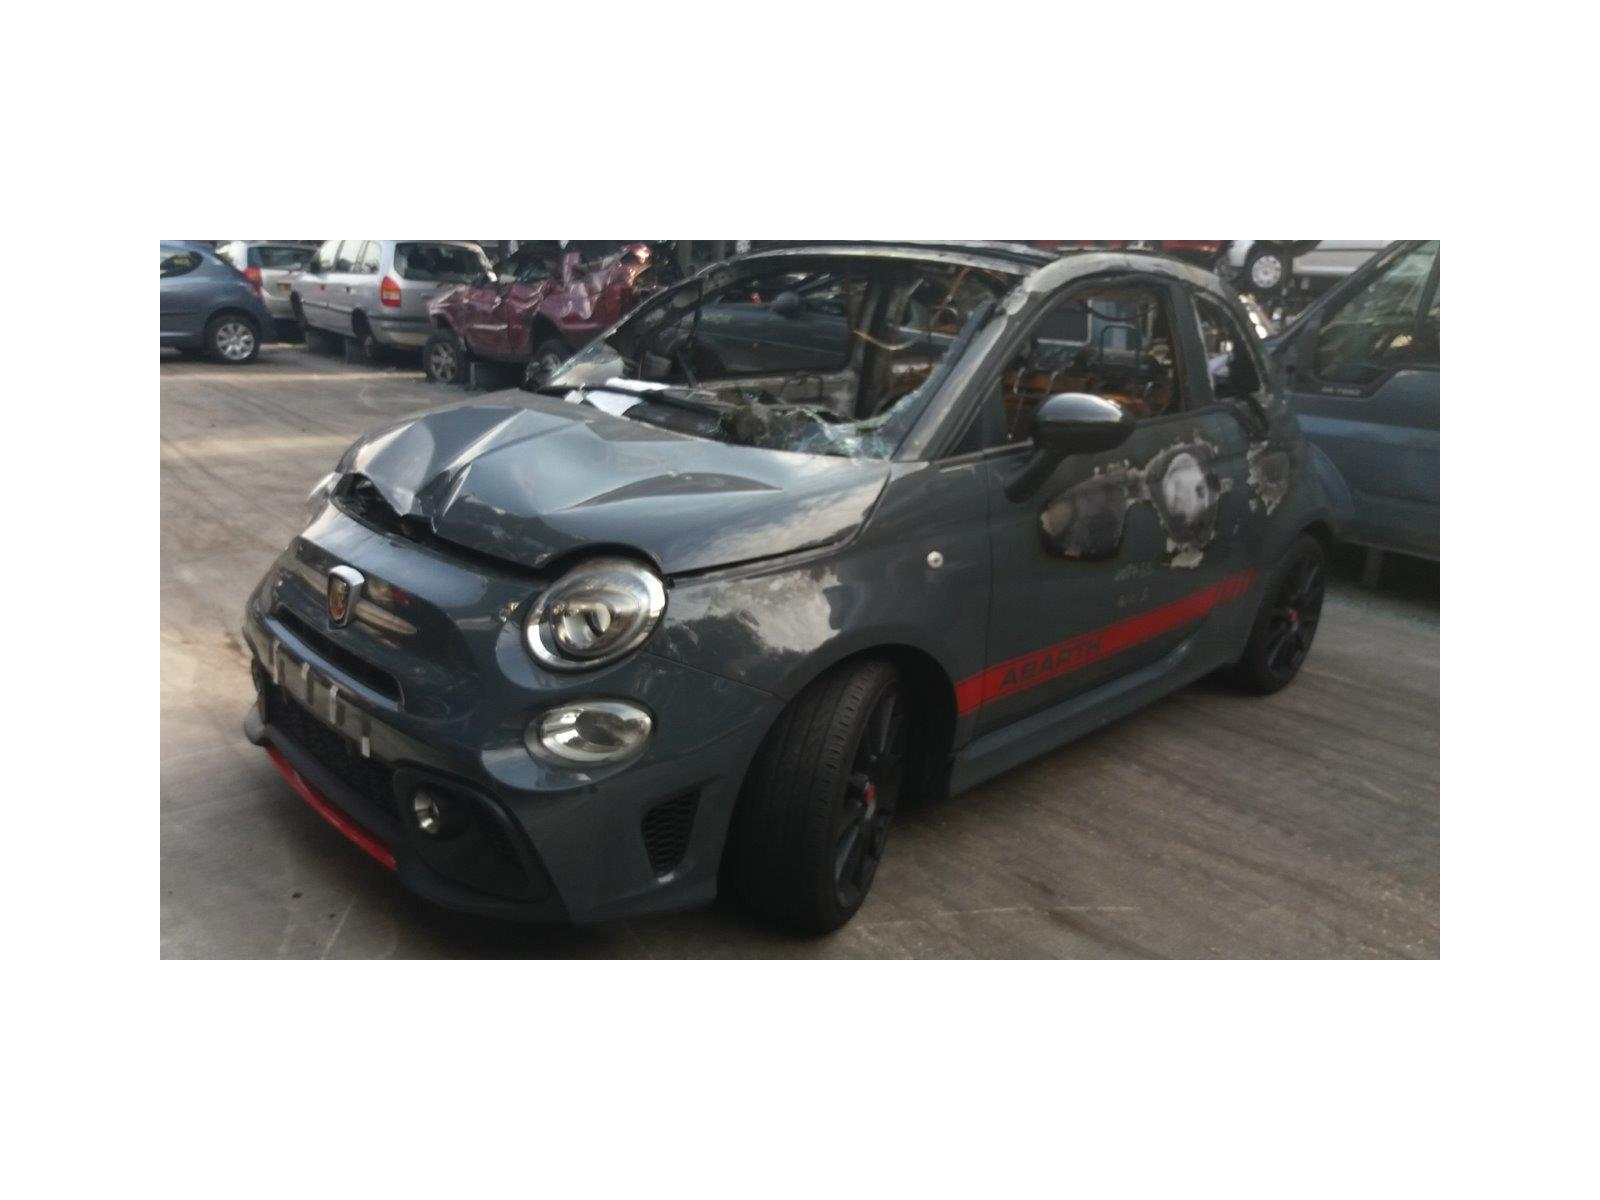 Fiat 500 Abarth 2016 On 695 XSR Yamaha Limited Edition T-Jet 2 Door  Cabriolet / scrap / salvage car for sale / auction | Silverlake Autoparts